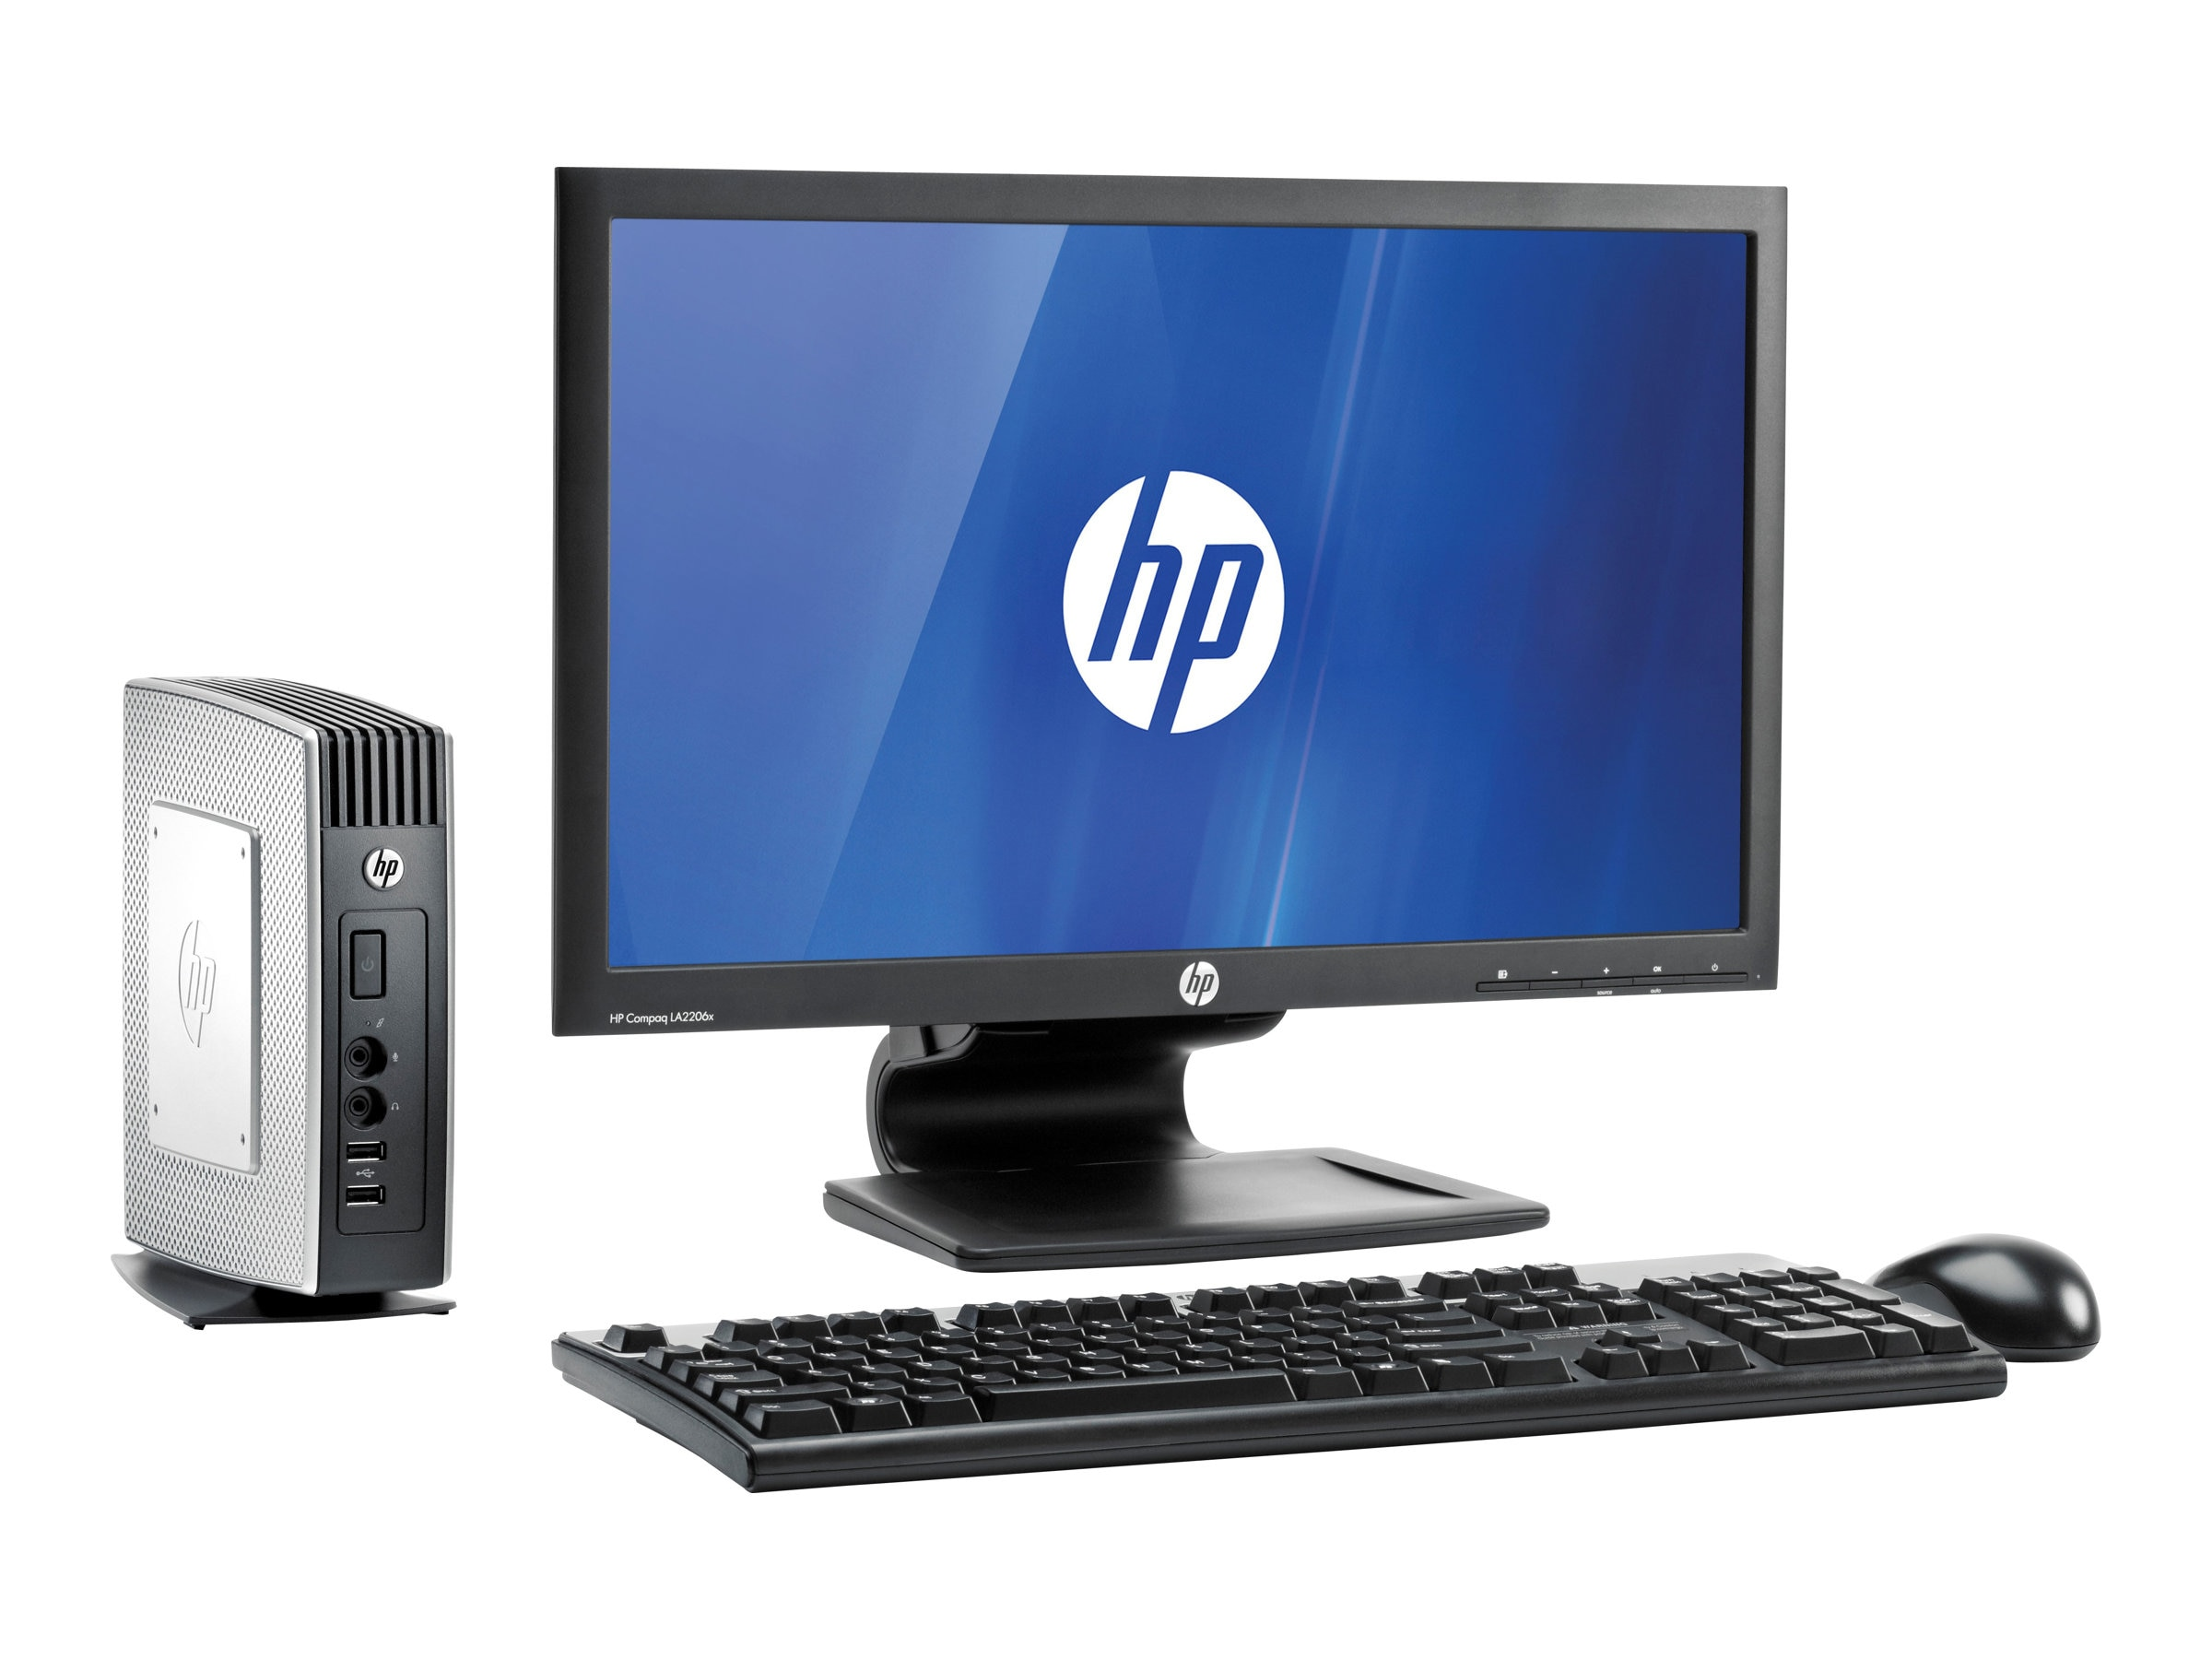 HP t510 Flexible Thin Client VIA Eden X2 U4200 DC 1.0GHz 4GB RAM 8GB Flash GbE WES7E, F3V02AA, 16474104, Thin Client Hardware